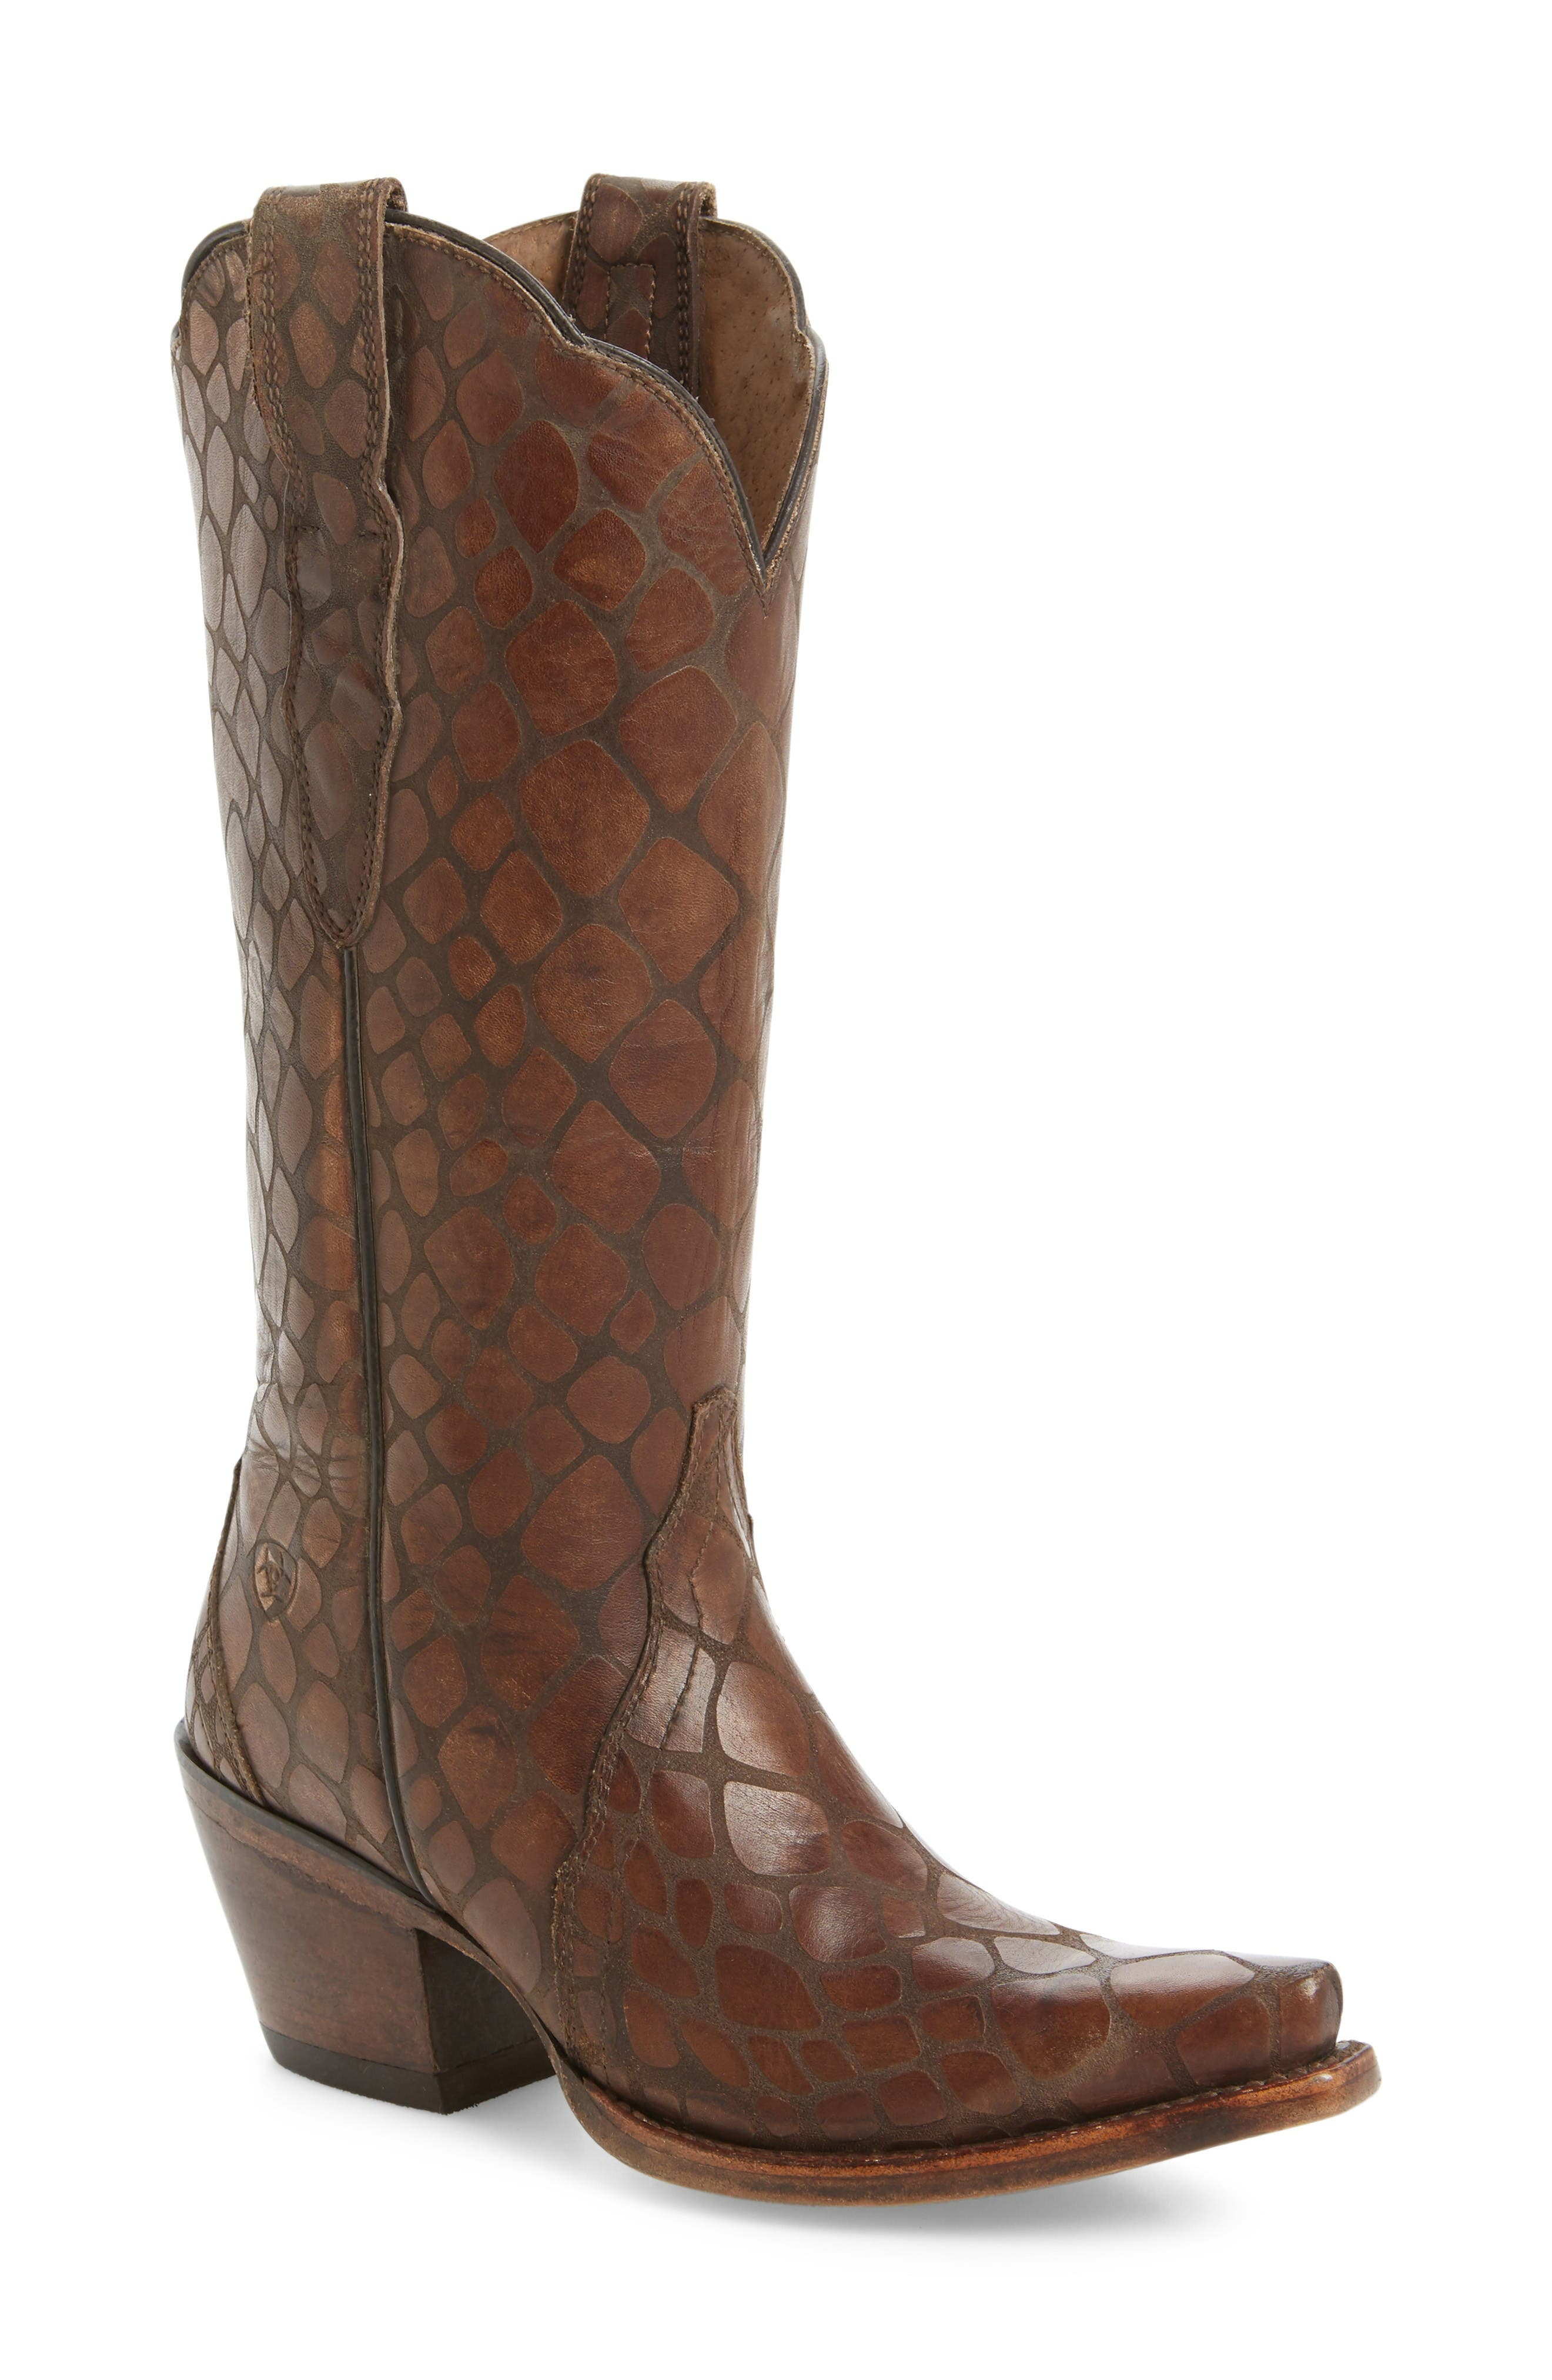 Antebellum Croc Embossed Western Boot,                         Main,                         color, Brown Leather